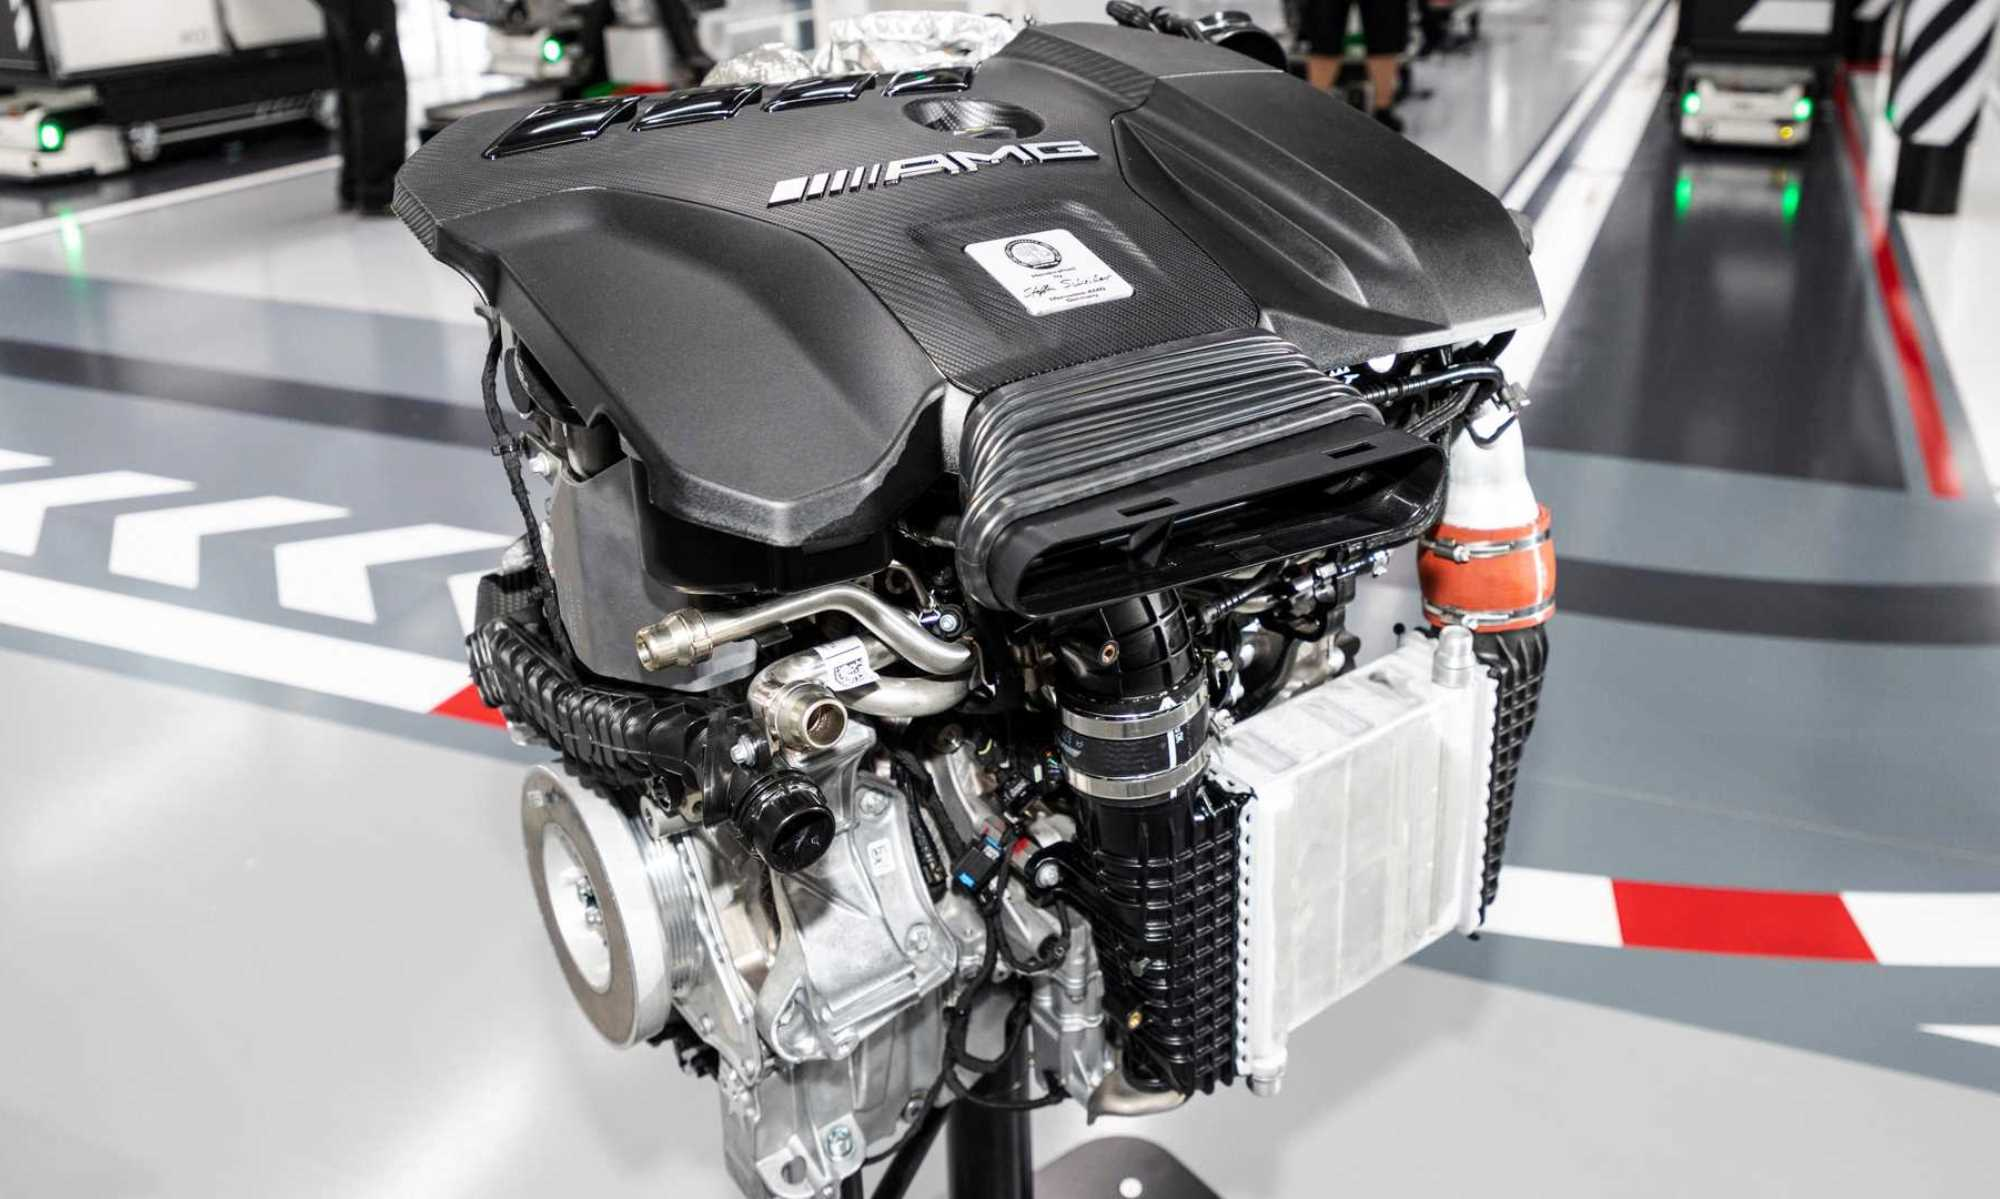 Mercedes-AMG A45 engine